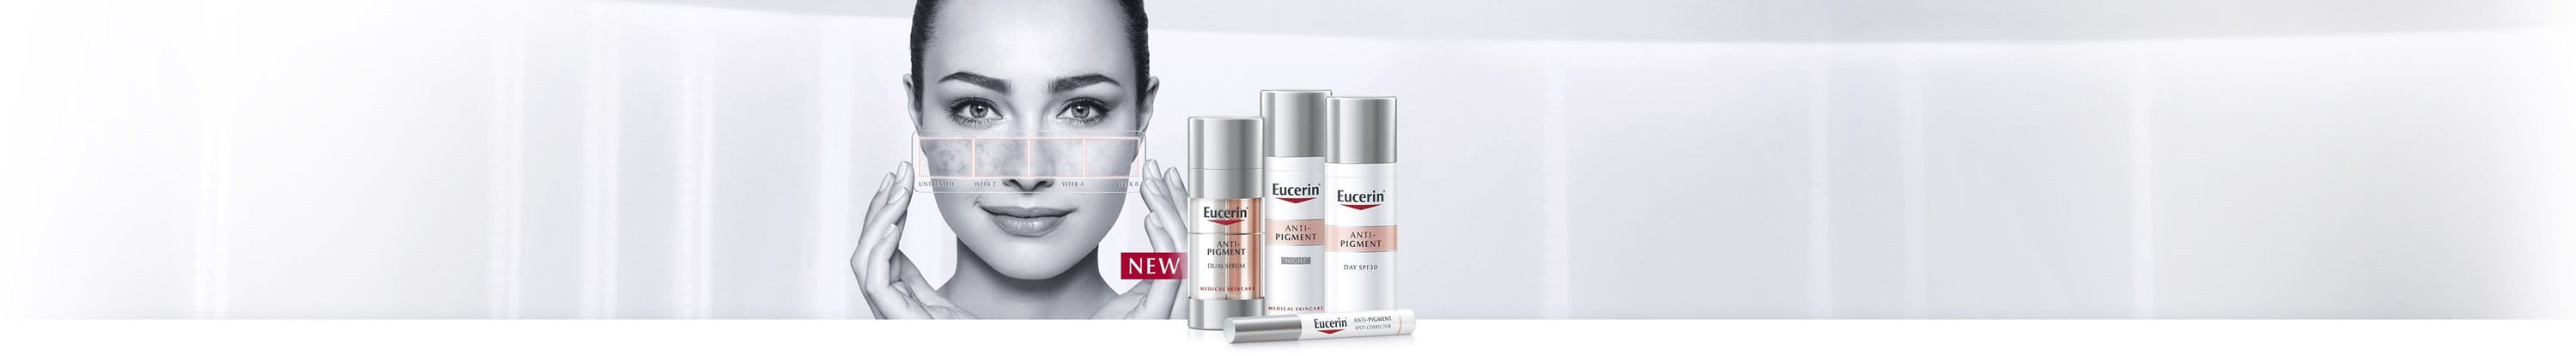 Uncover Anti-Pigment with Eucerin